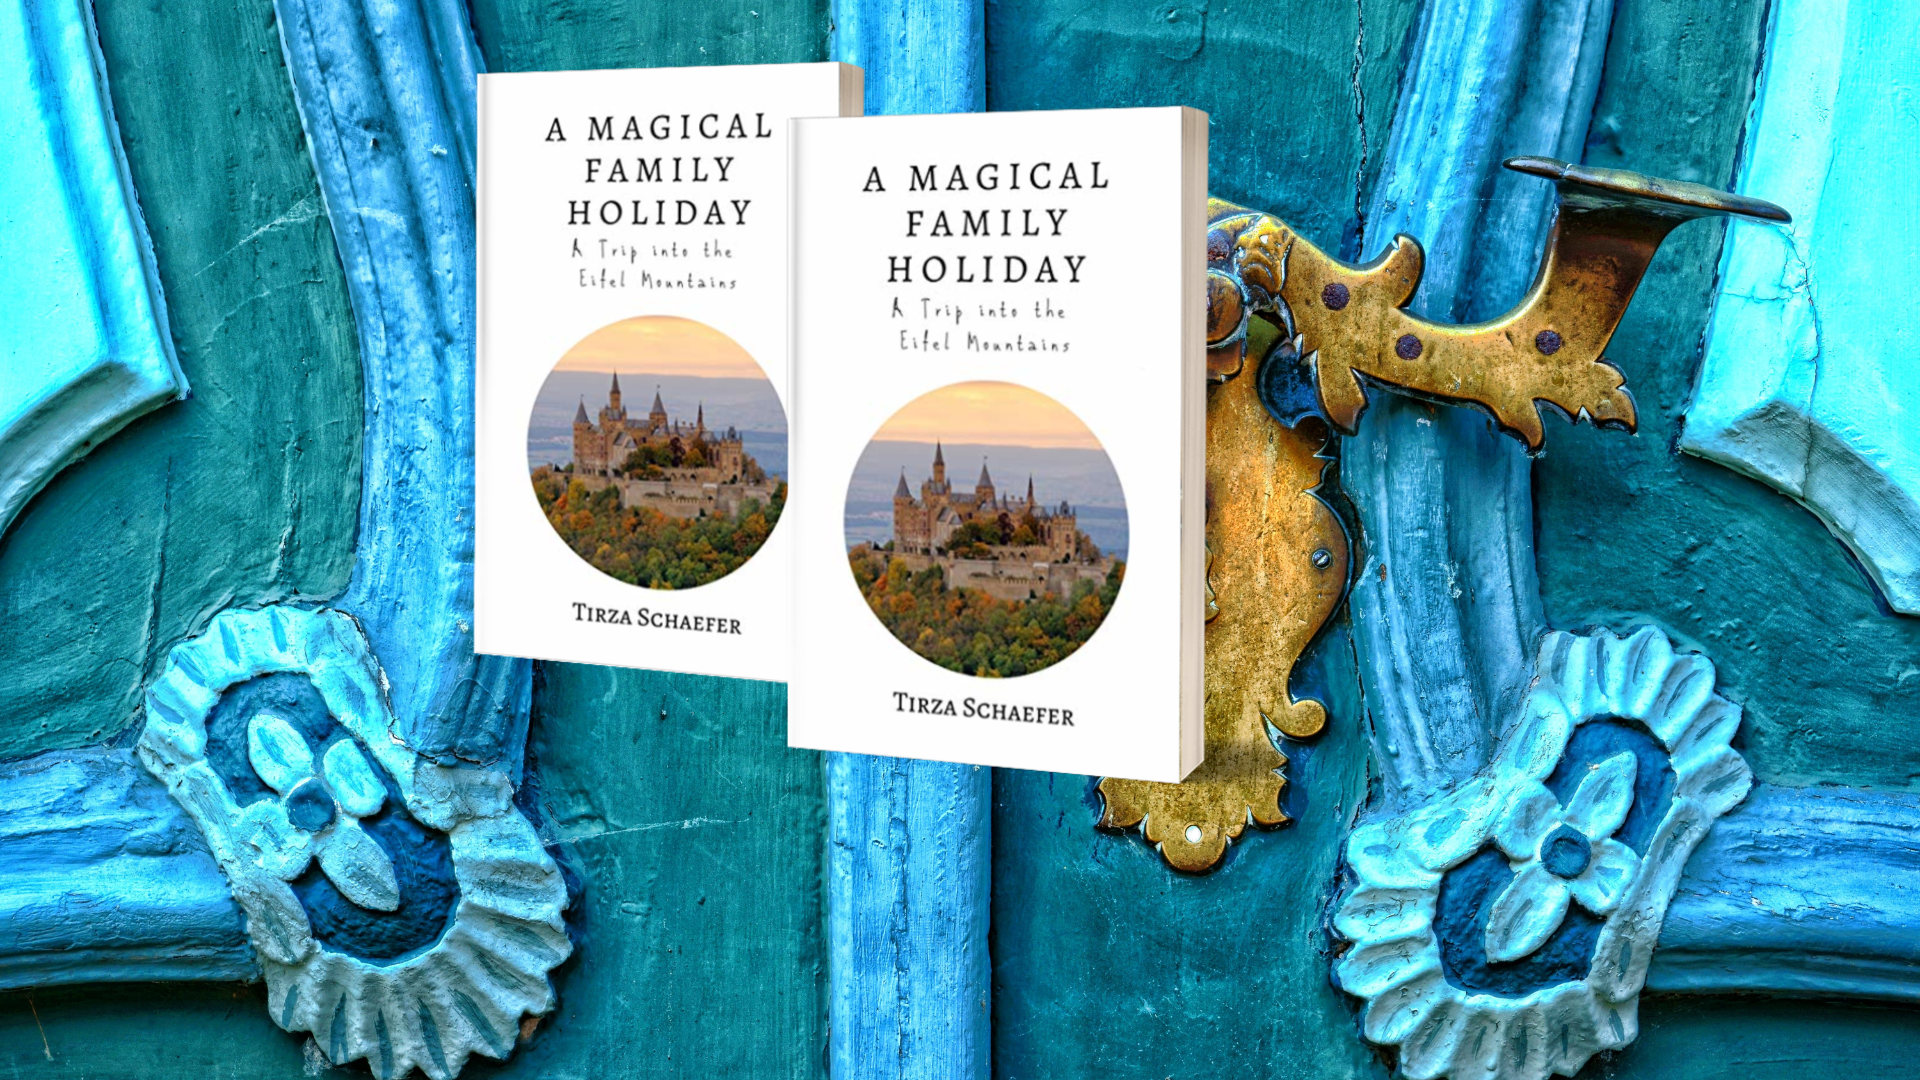 A Magical Family Holiday: A Trip into the Eifel Mountains by Tirza Schaefer